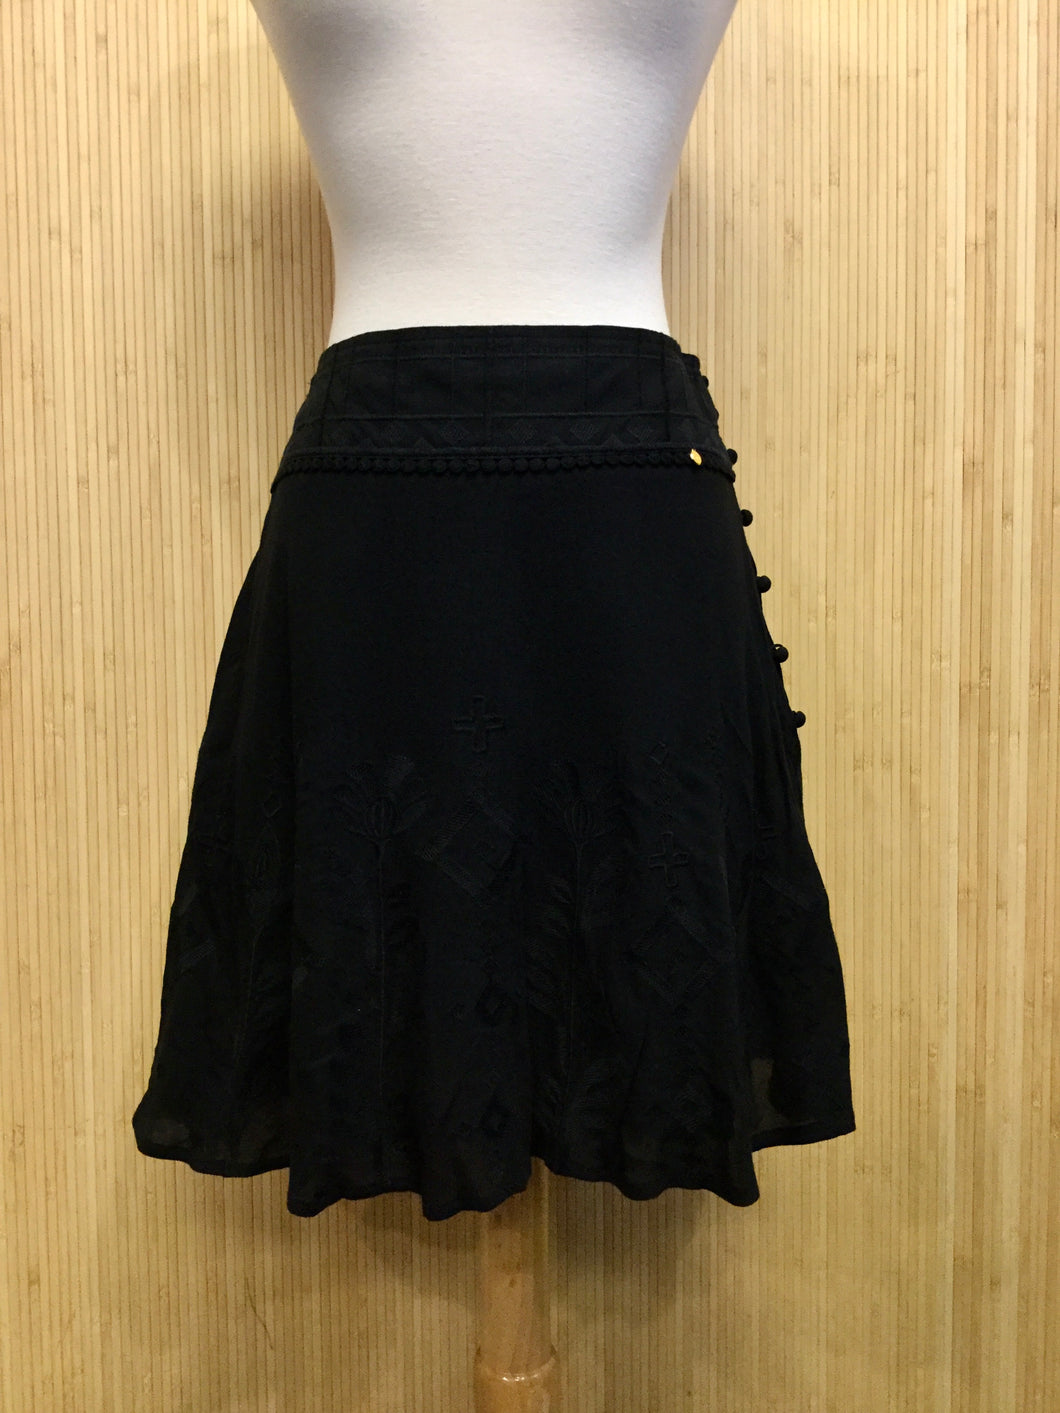 Harlyn Embroidered Miniskirt (S)